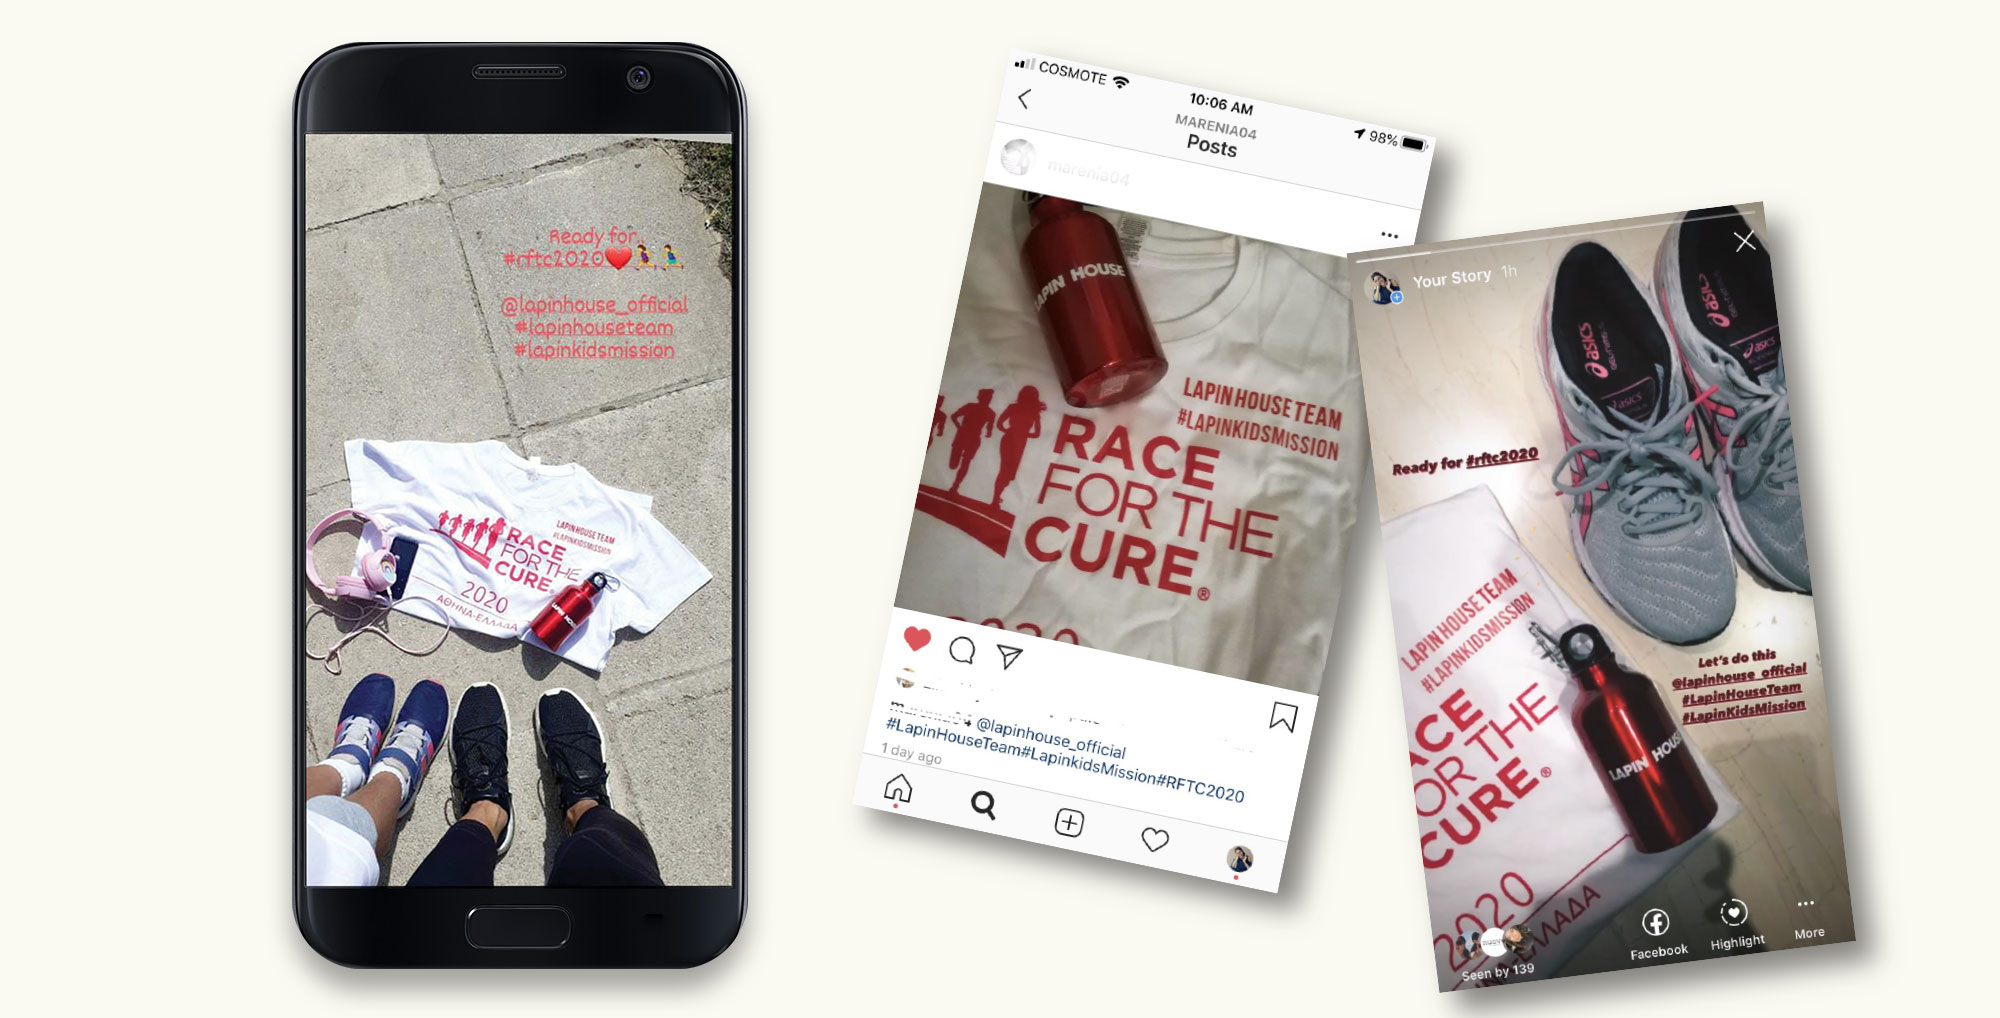 CSR Campaign: Lapin House Supports Race for the Cure in the Largest Virtual Race of Europe